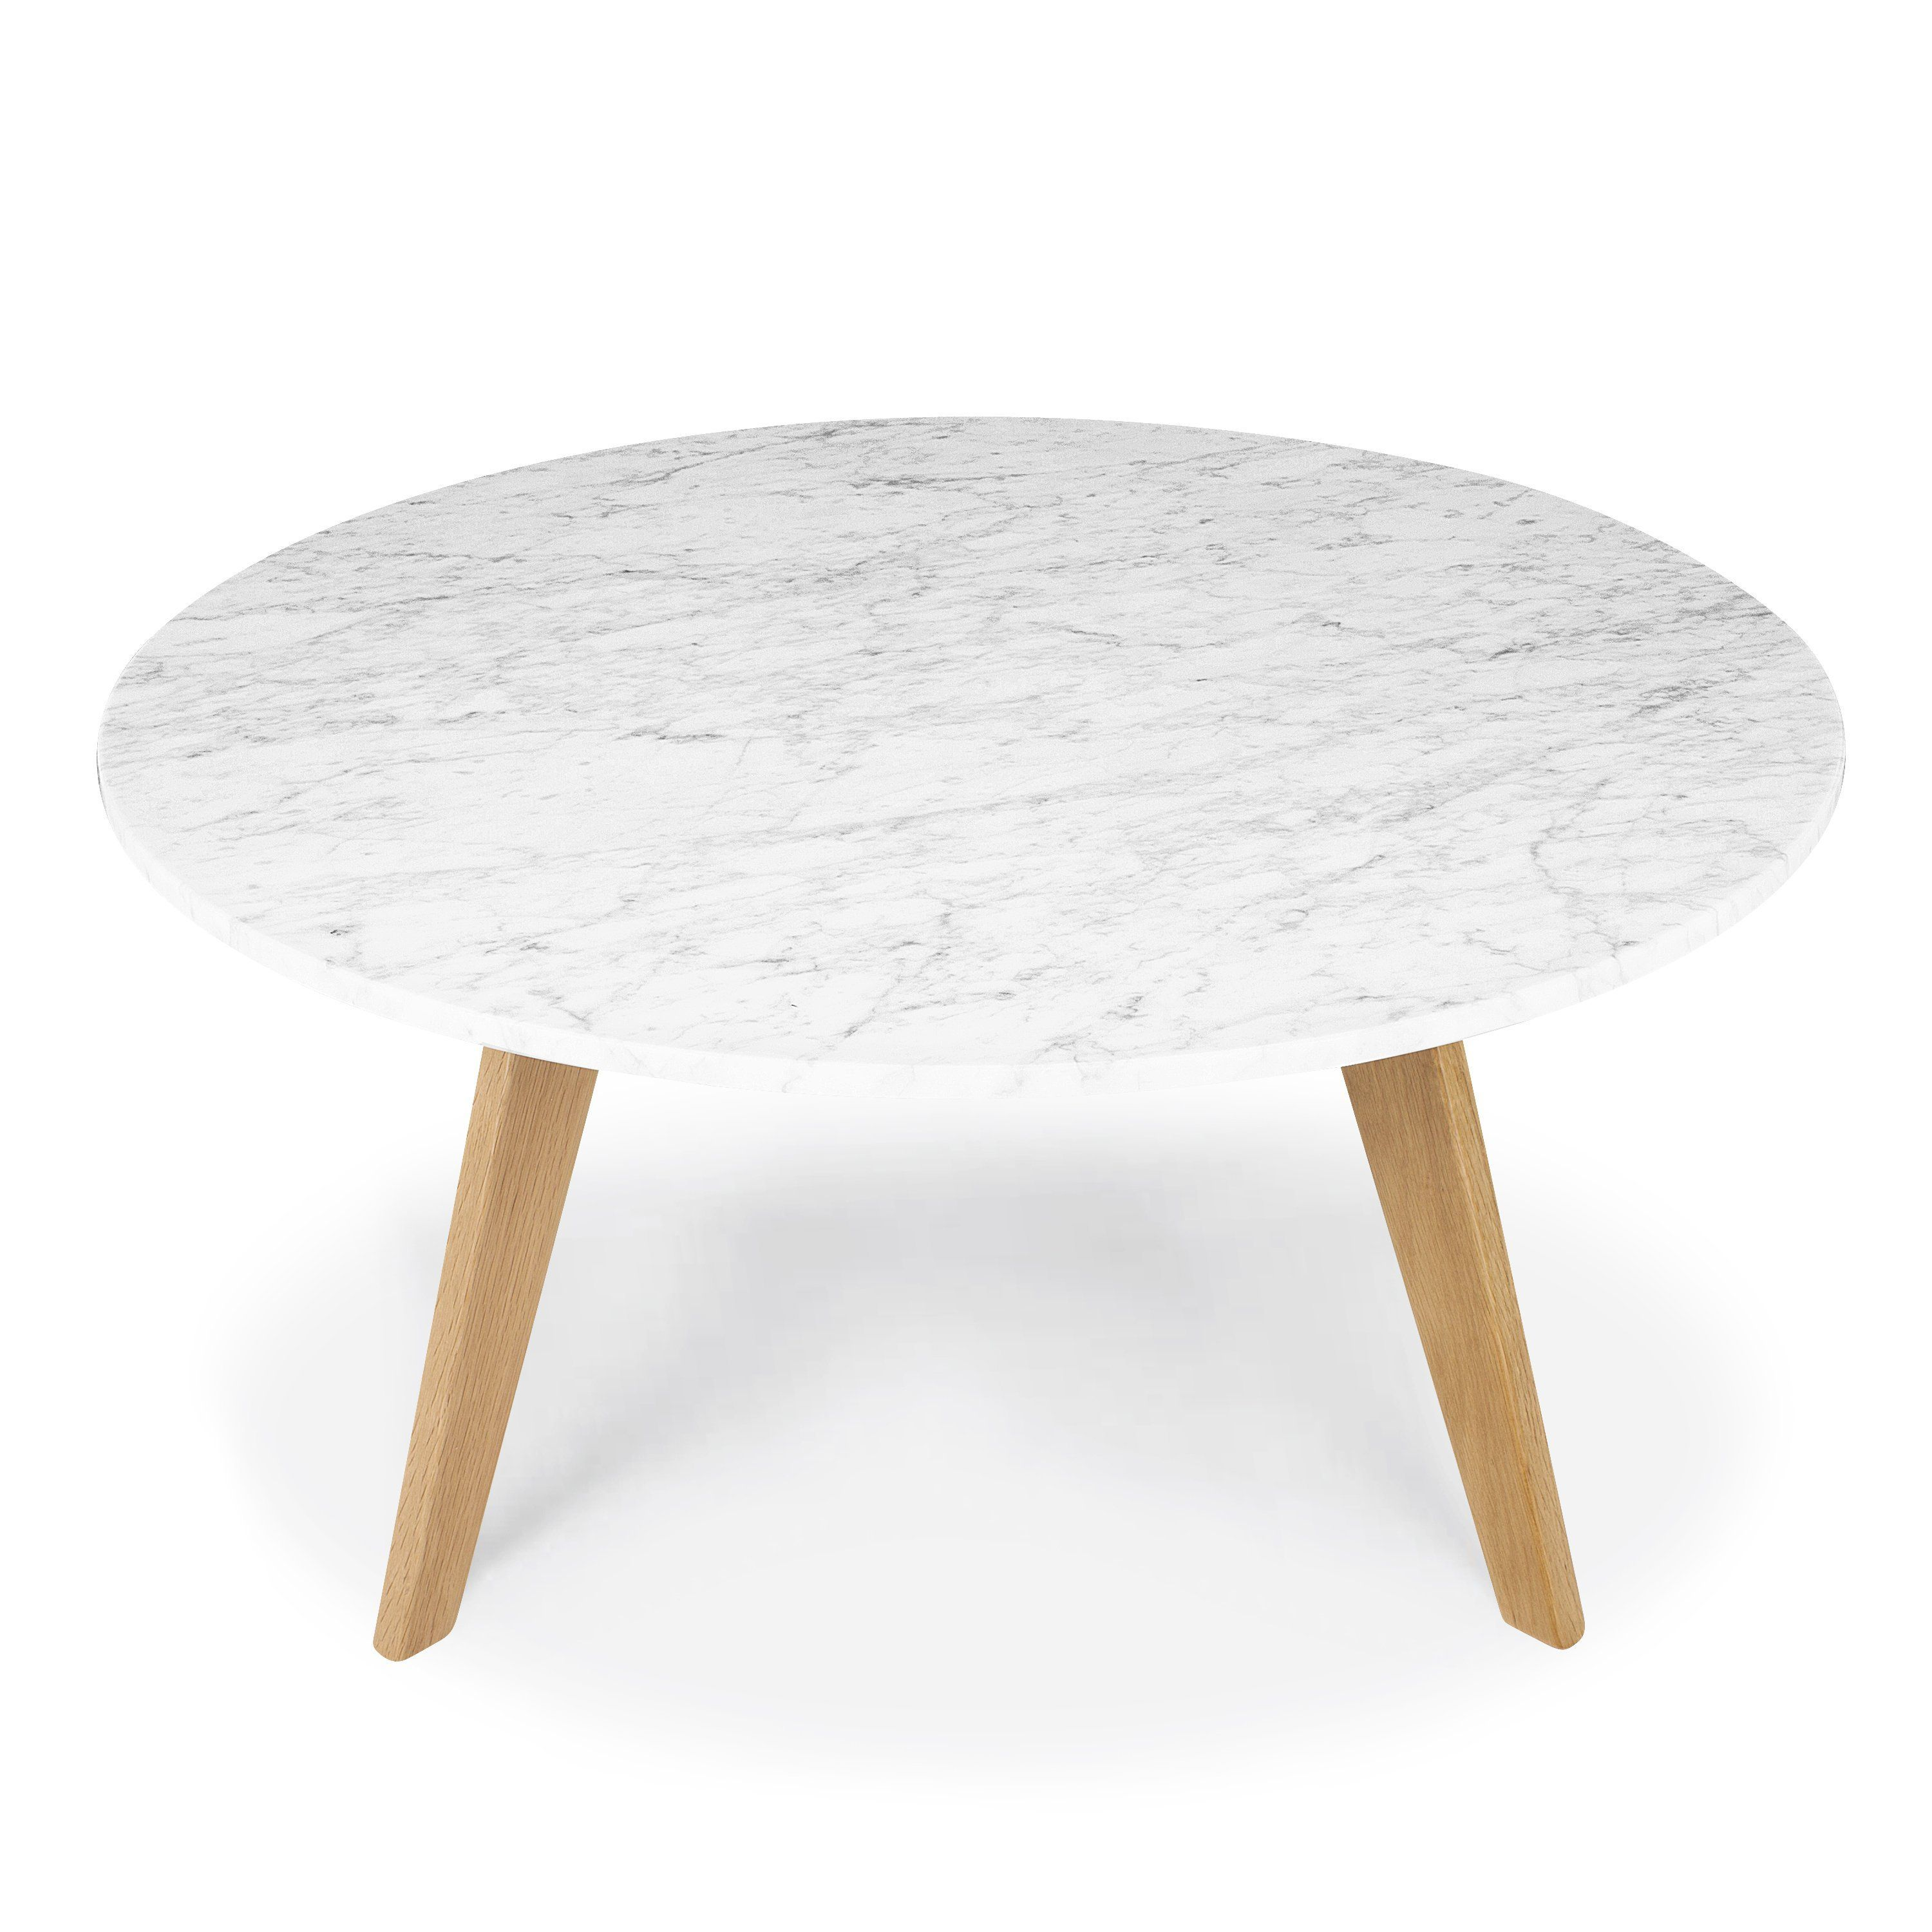 Riley Marble Round Coffee Table Poly Bark Marble Round Coffee Table White Round Coffee Table Coffee Table Small Round [ 3000 x 3000 Pixel ]